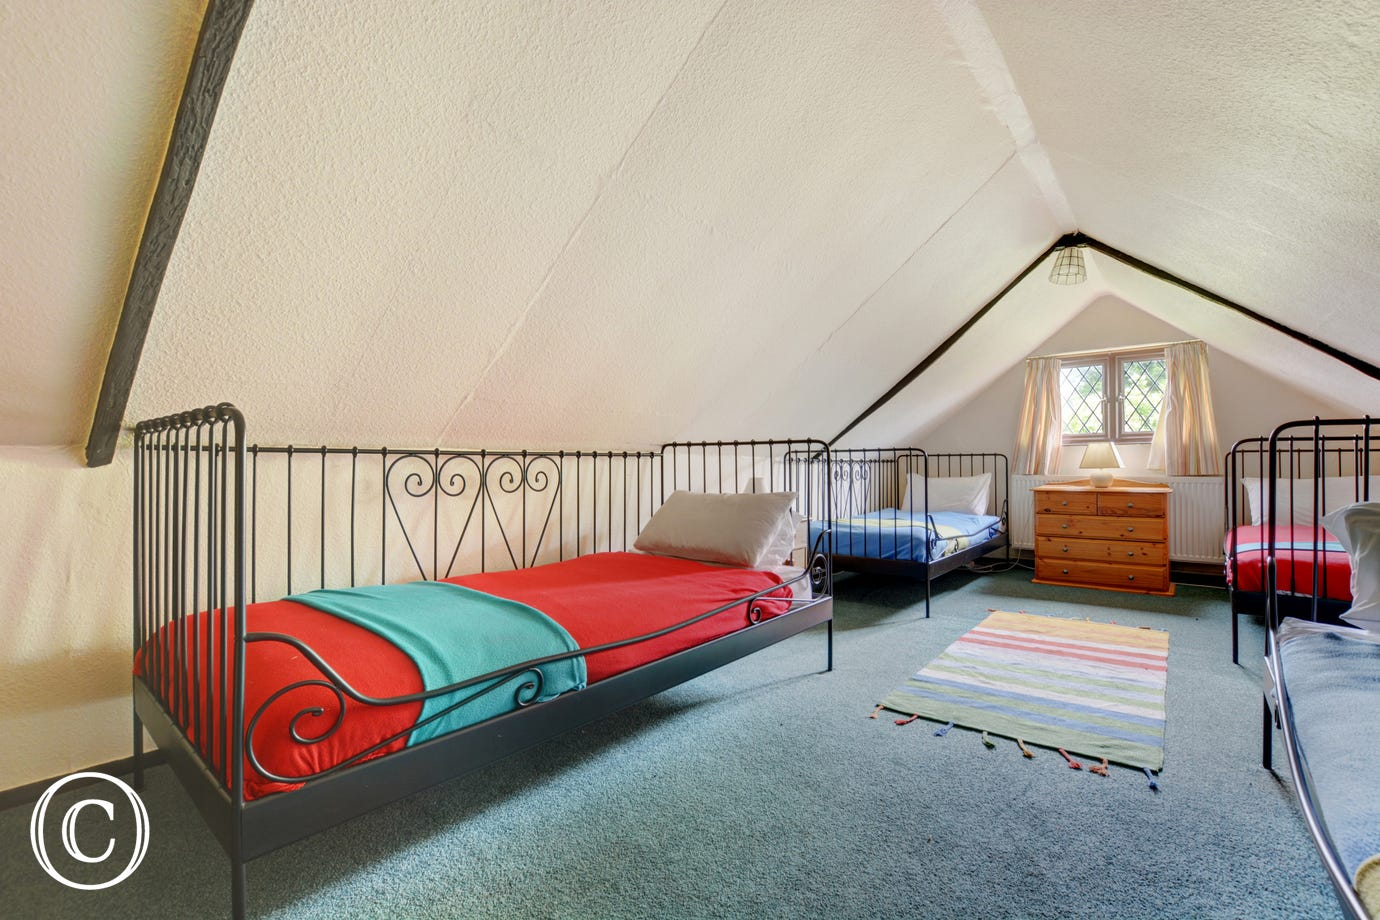 The children's room has sloping ceilings and wrought iron bedsteads